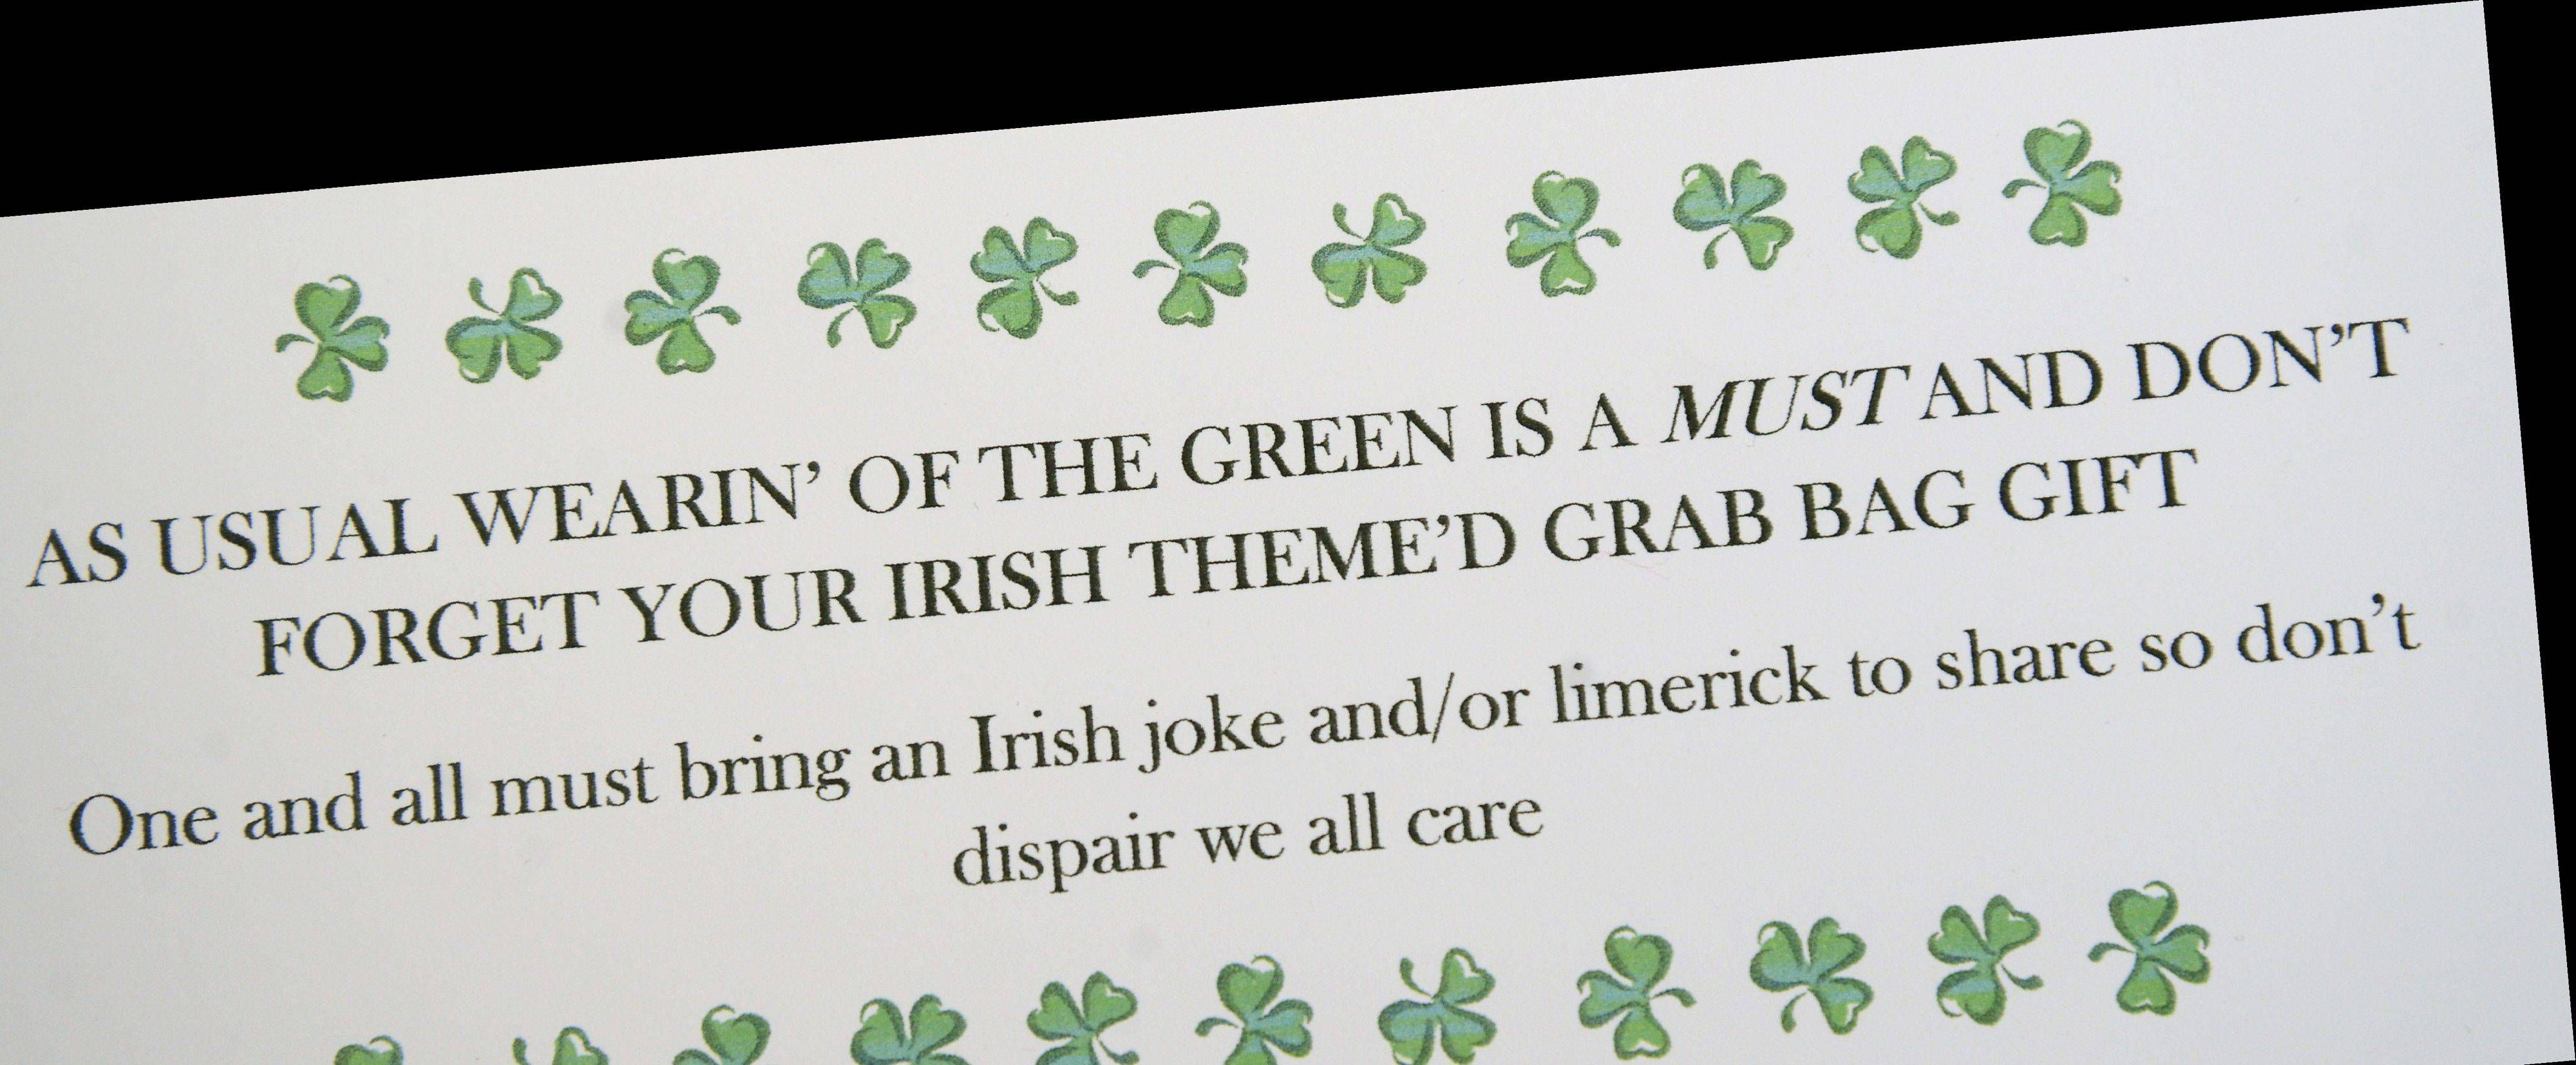 The invitation to Margaret Mary Eklund's Lassie Luncheon asks guests to wear green and bring an Irish joke or limerick.